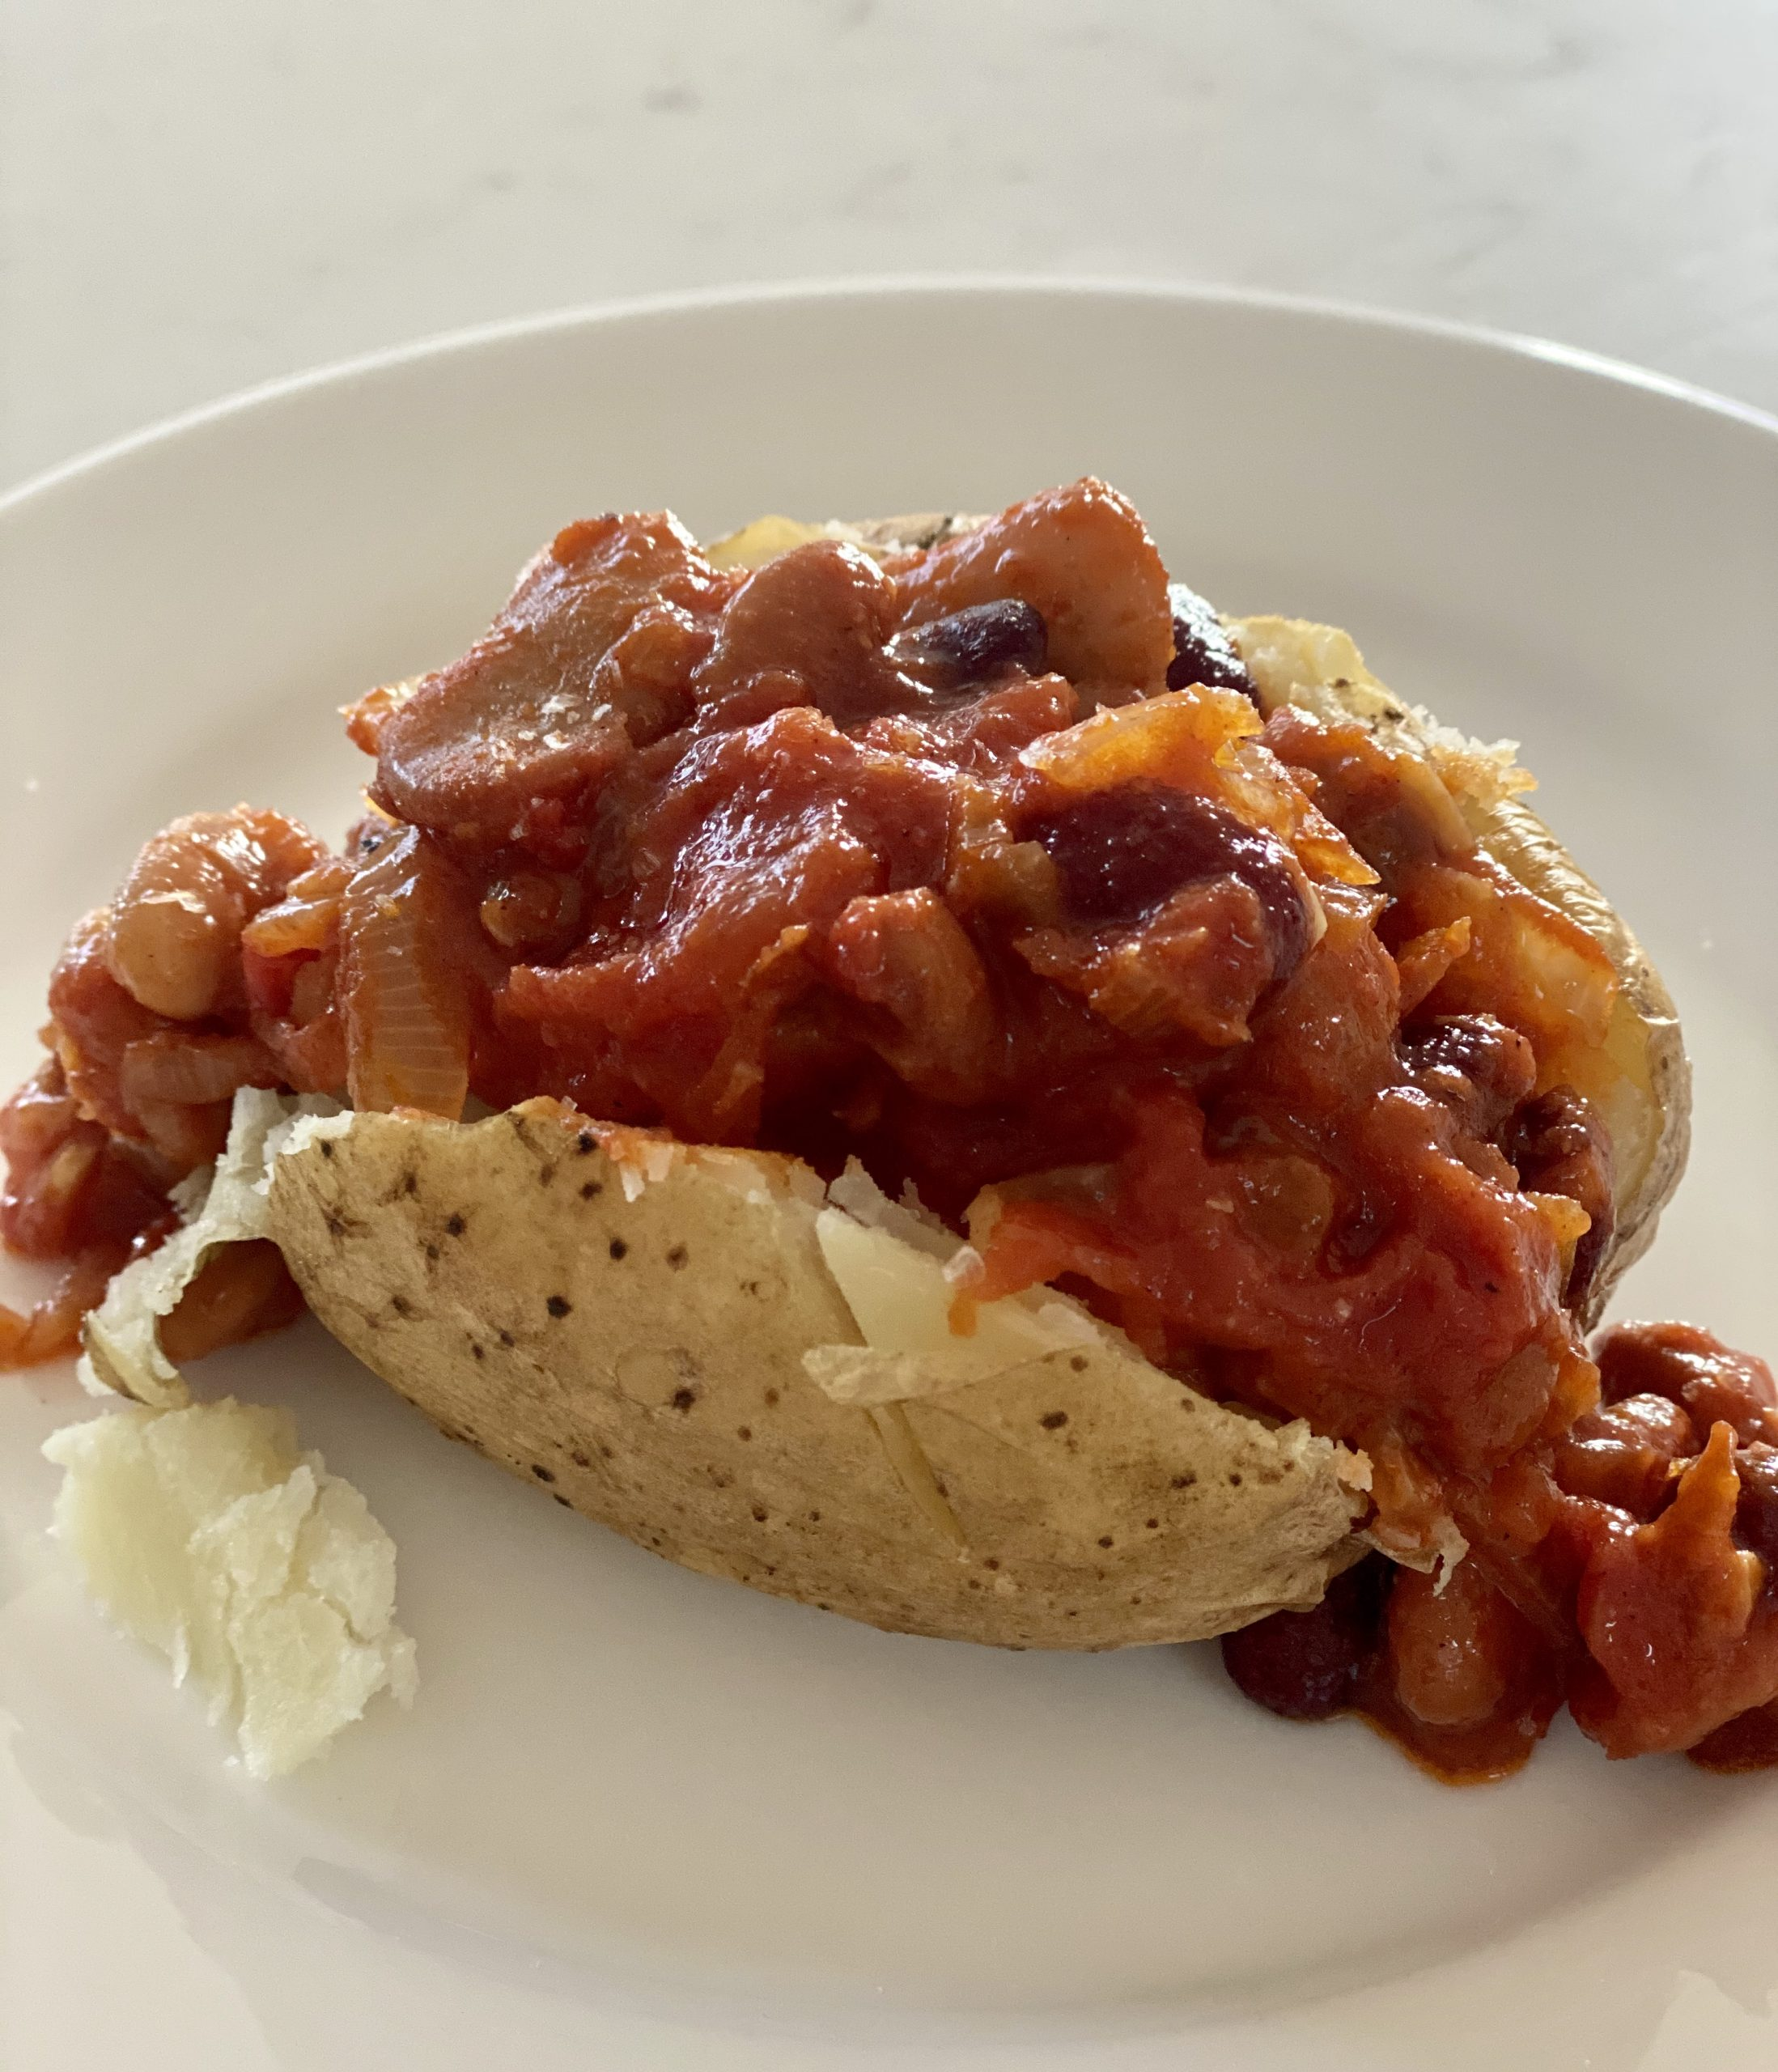 Home made Baked Beans and Baked Potato